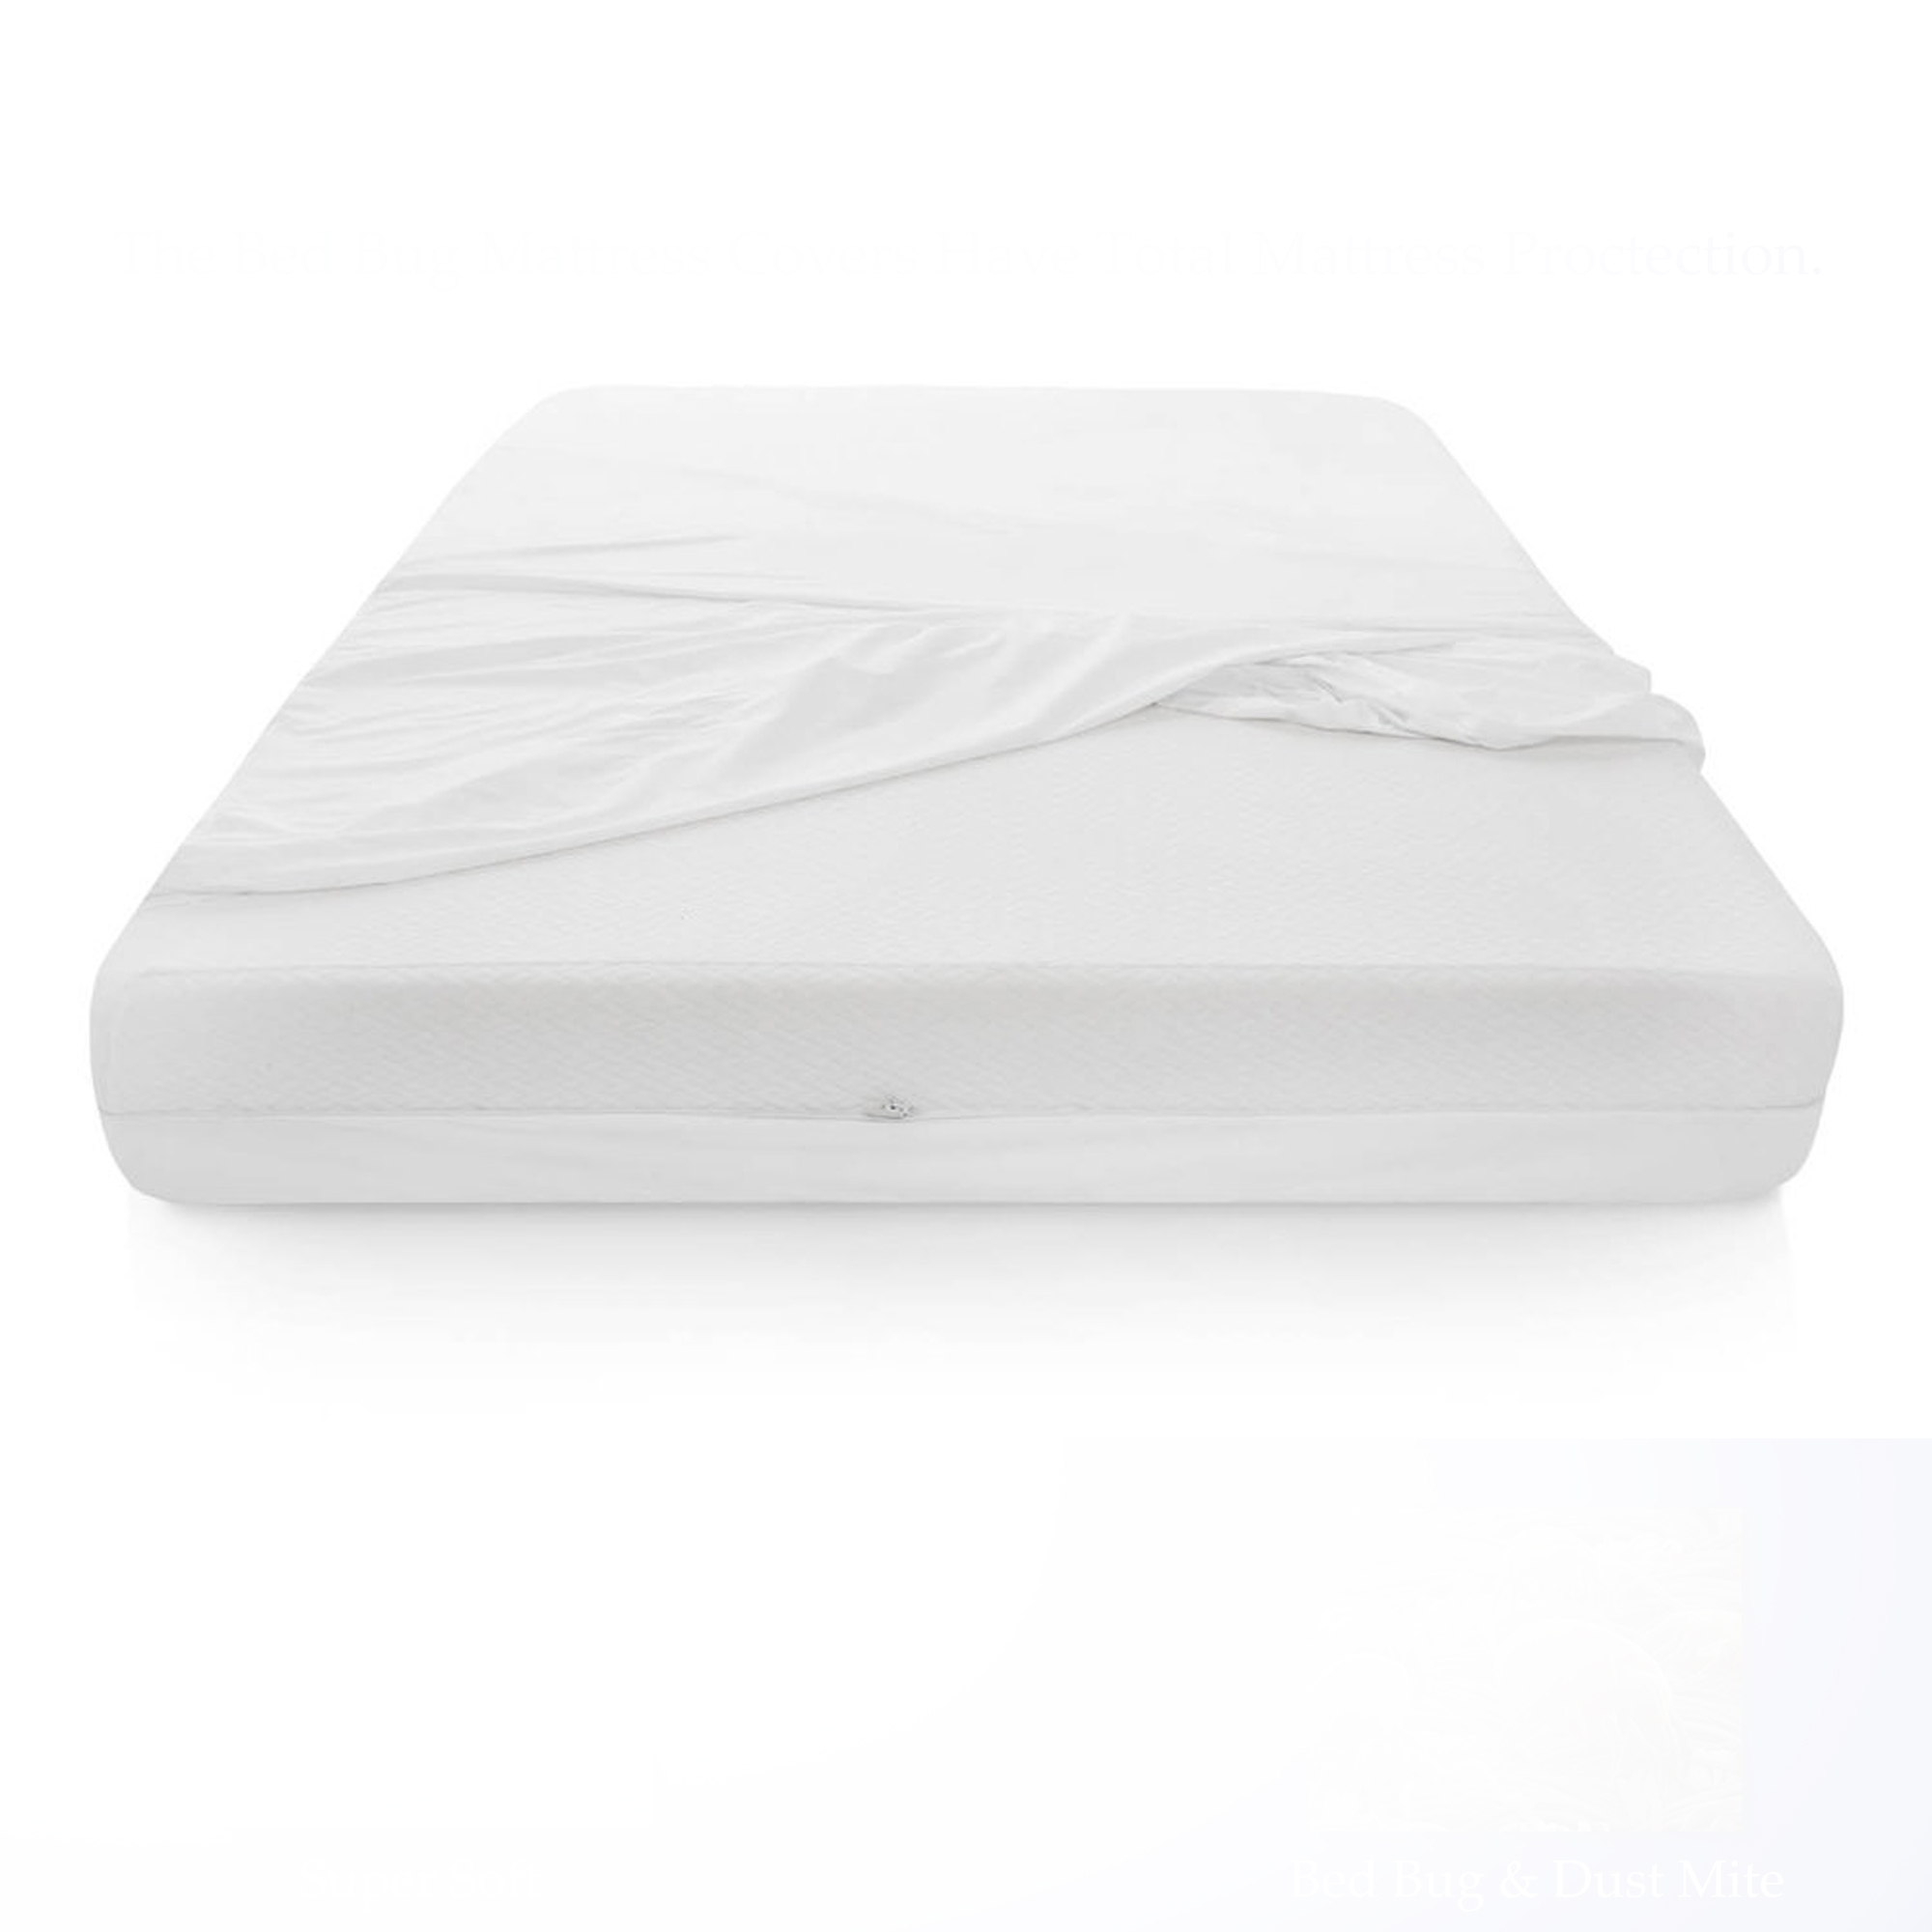 TERRY TOWEL MATTRESS PROTECTOR WATERPROOF FITTED COVER BY CHARLOTTE ANDERSEN